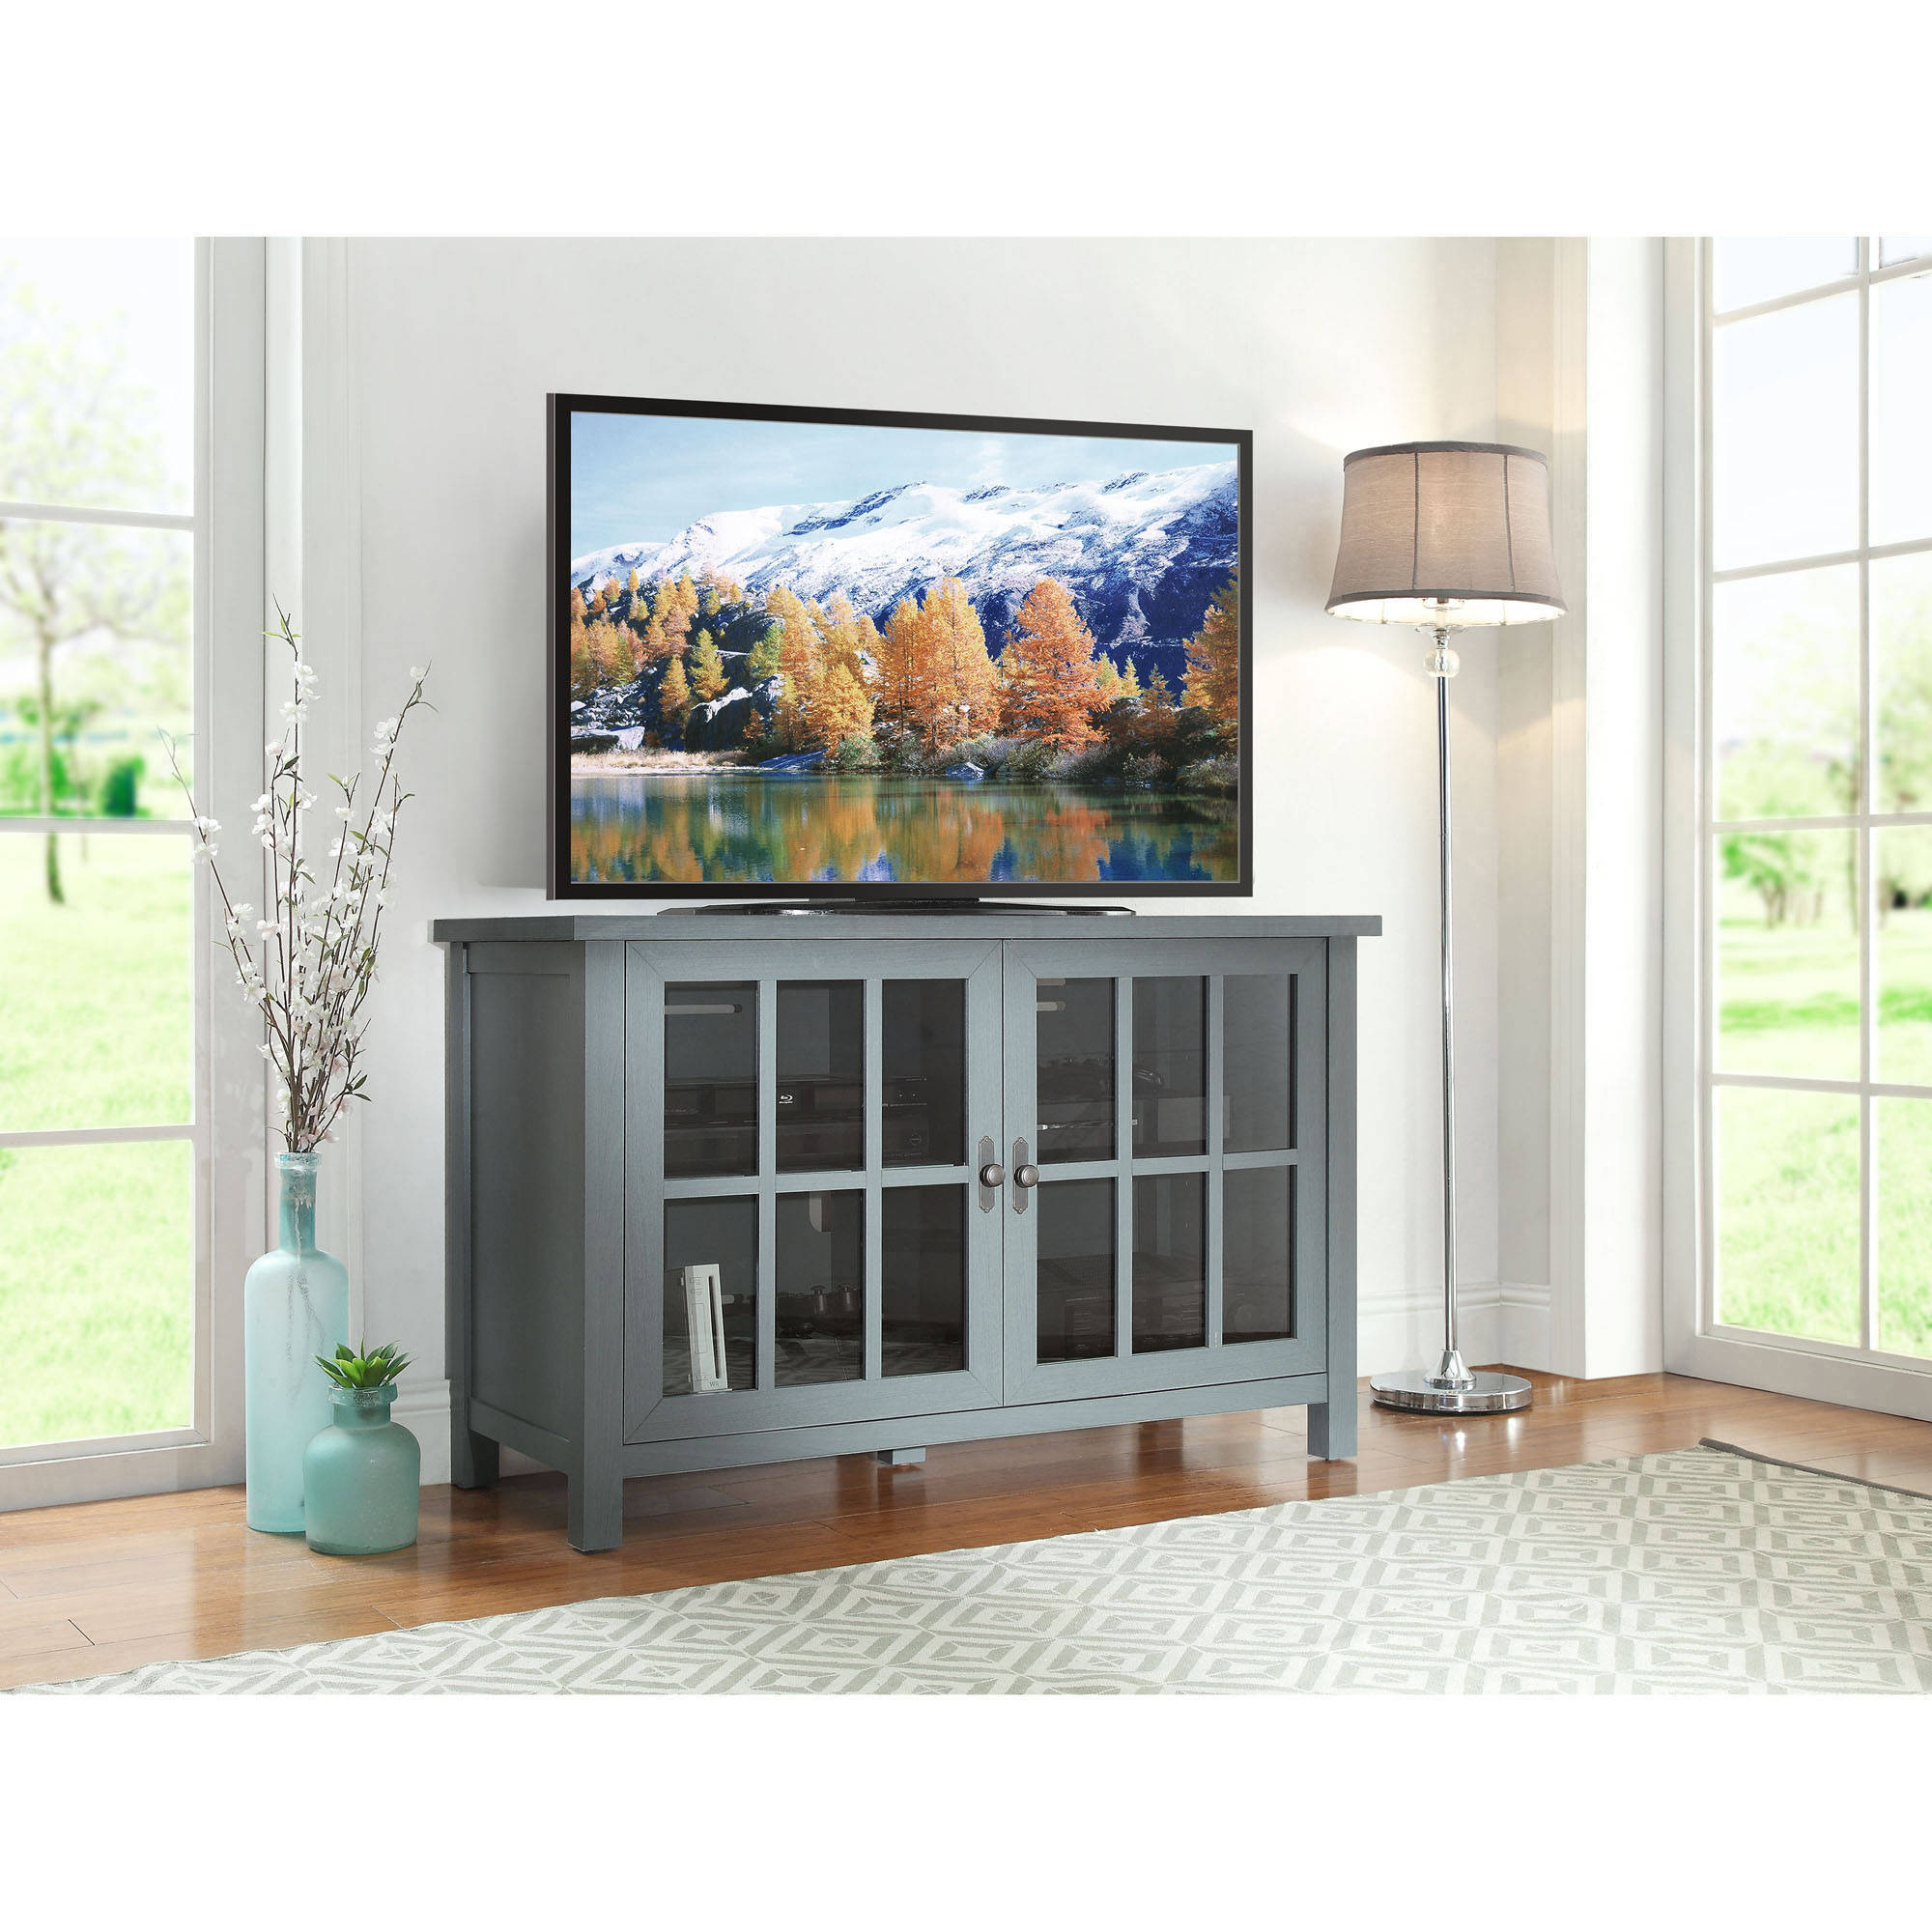 "Better Homes and Gardens Oxford Square TV Stand and Console for TVs up to 55"", Multiple Colors"